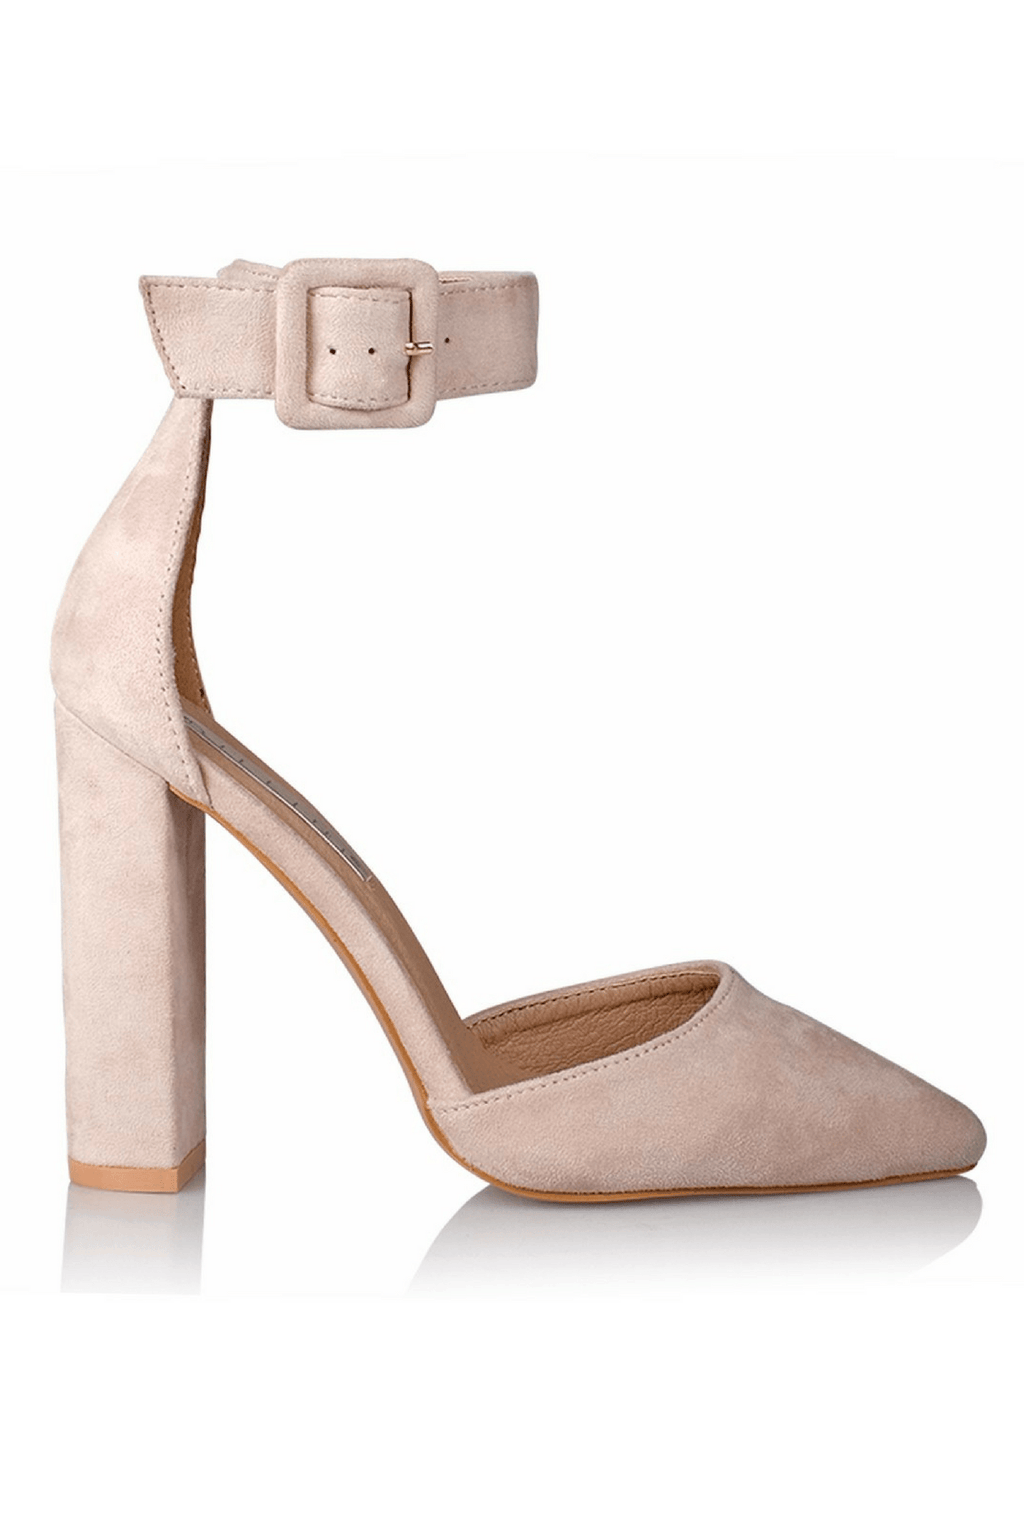 Gracie Heels in Blush - Billini Shoes